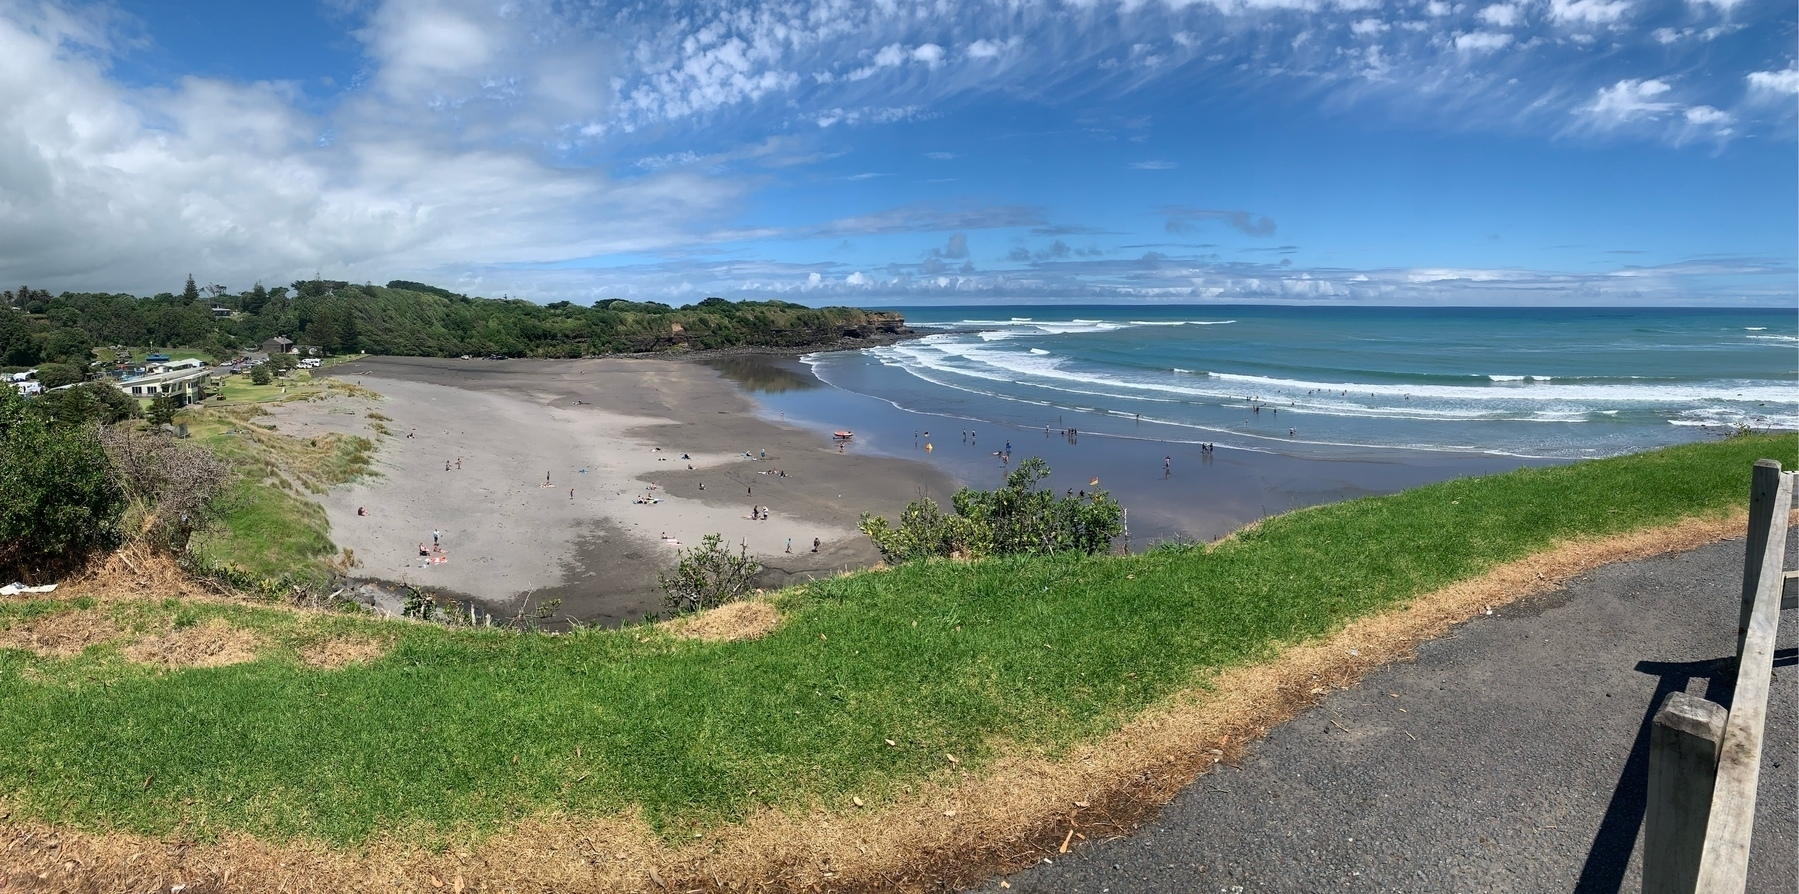 Ōpunake beach from a walkway on the cliffs on its west side